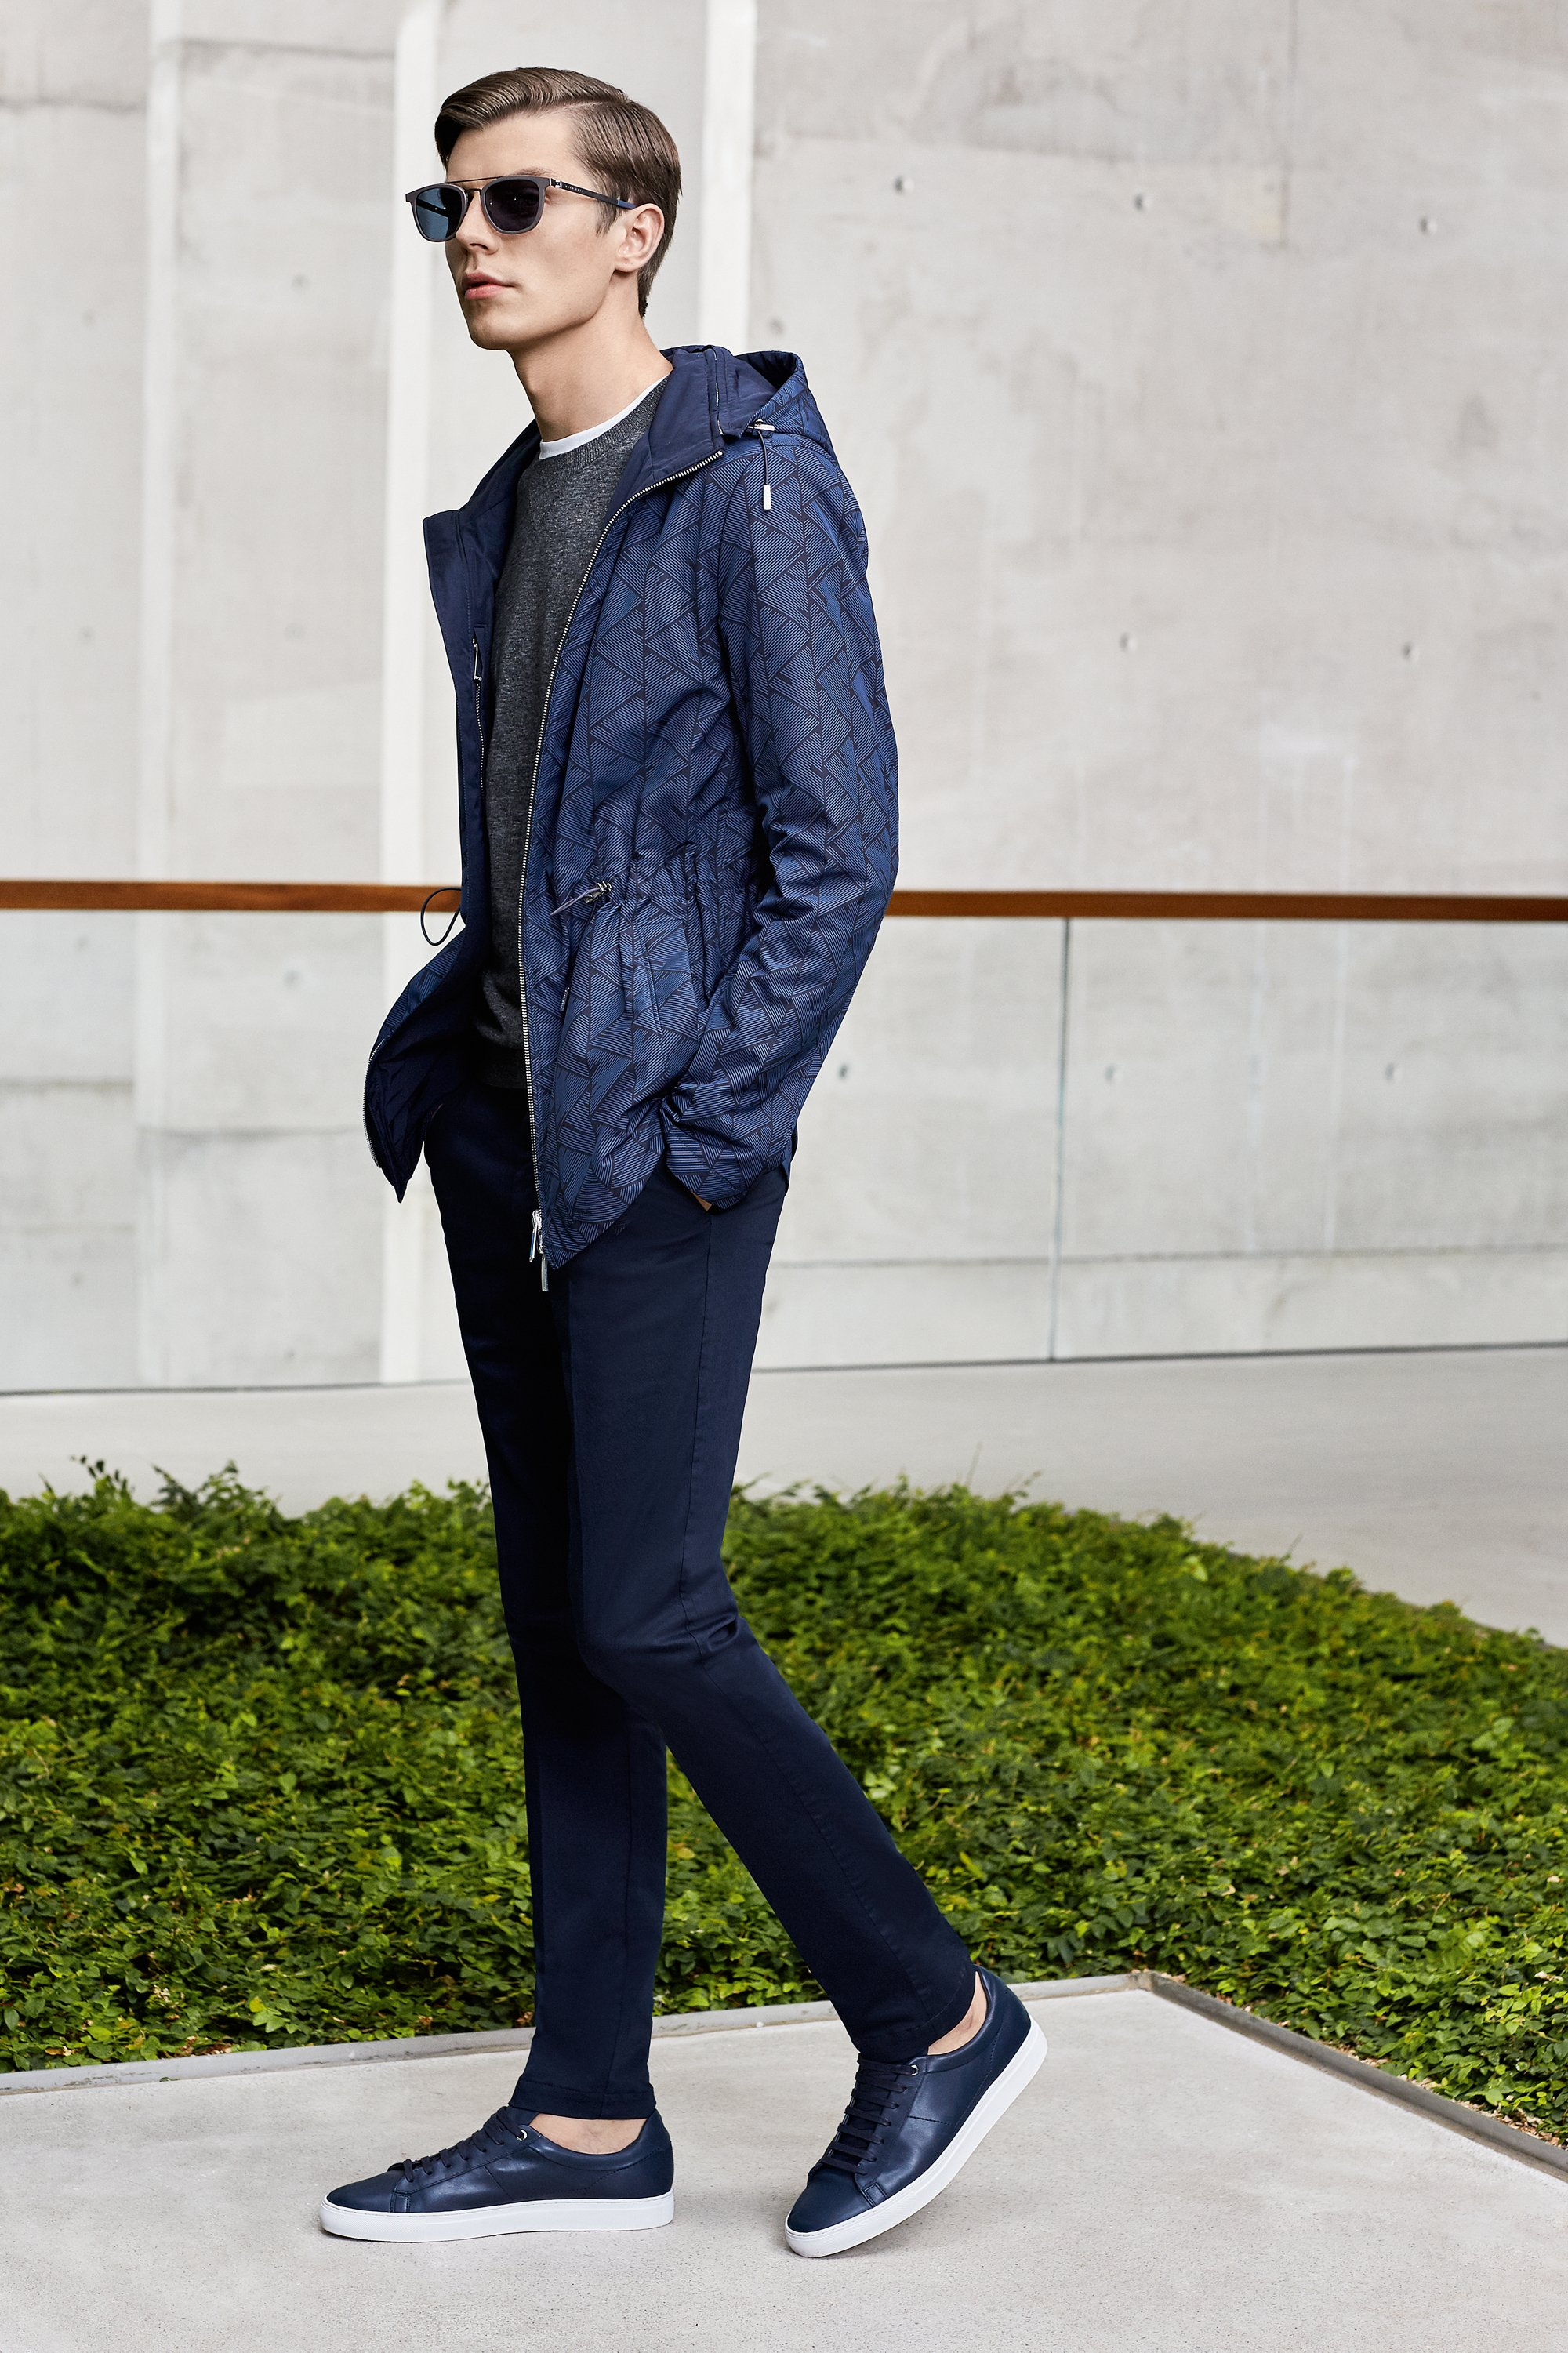 Outerwear, jersey, trousers, shoes and glasses by BOSS